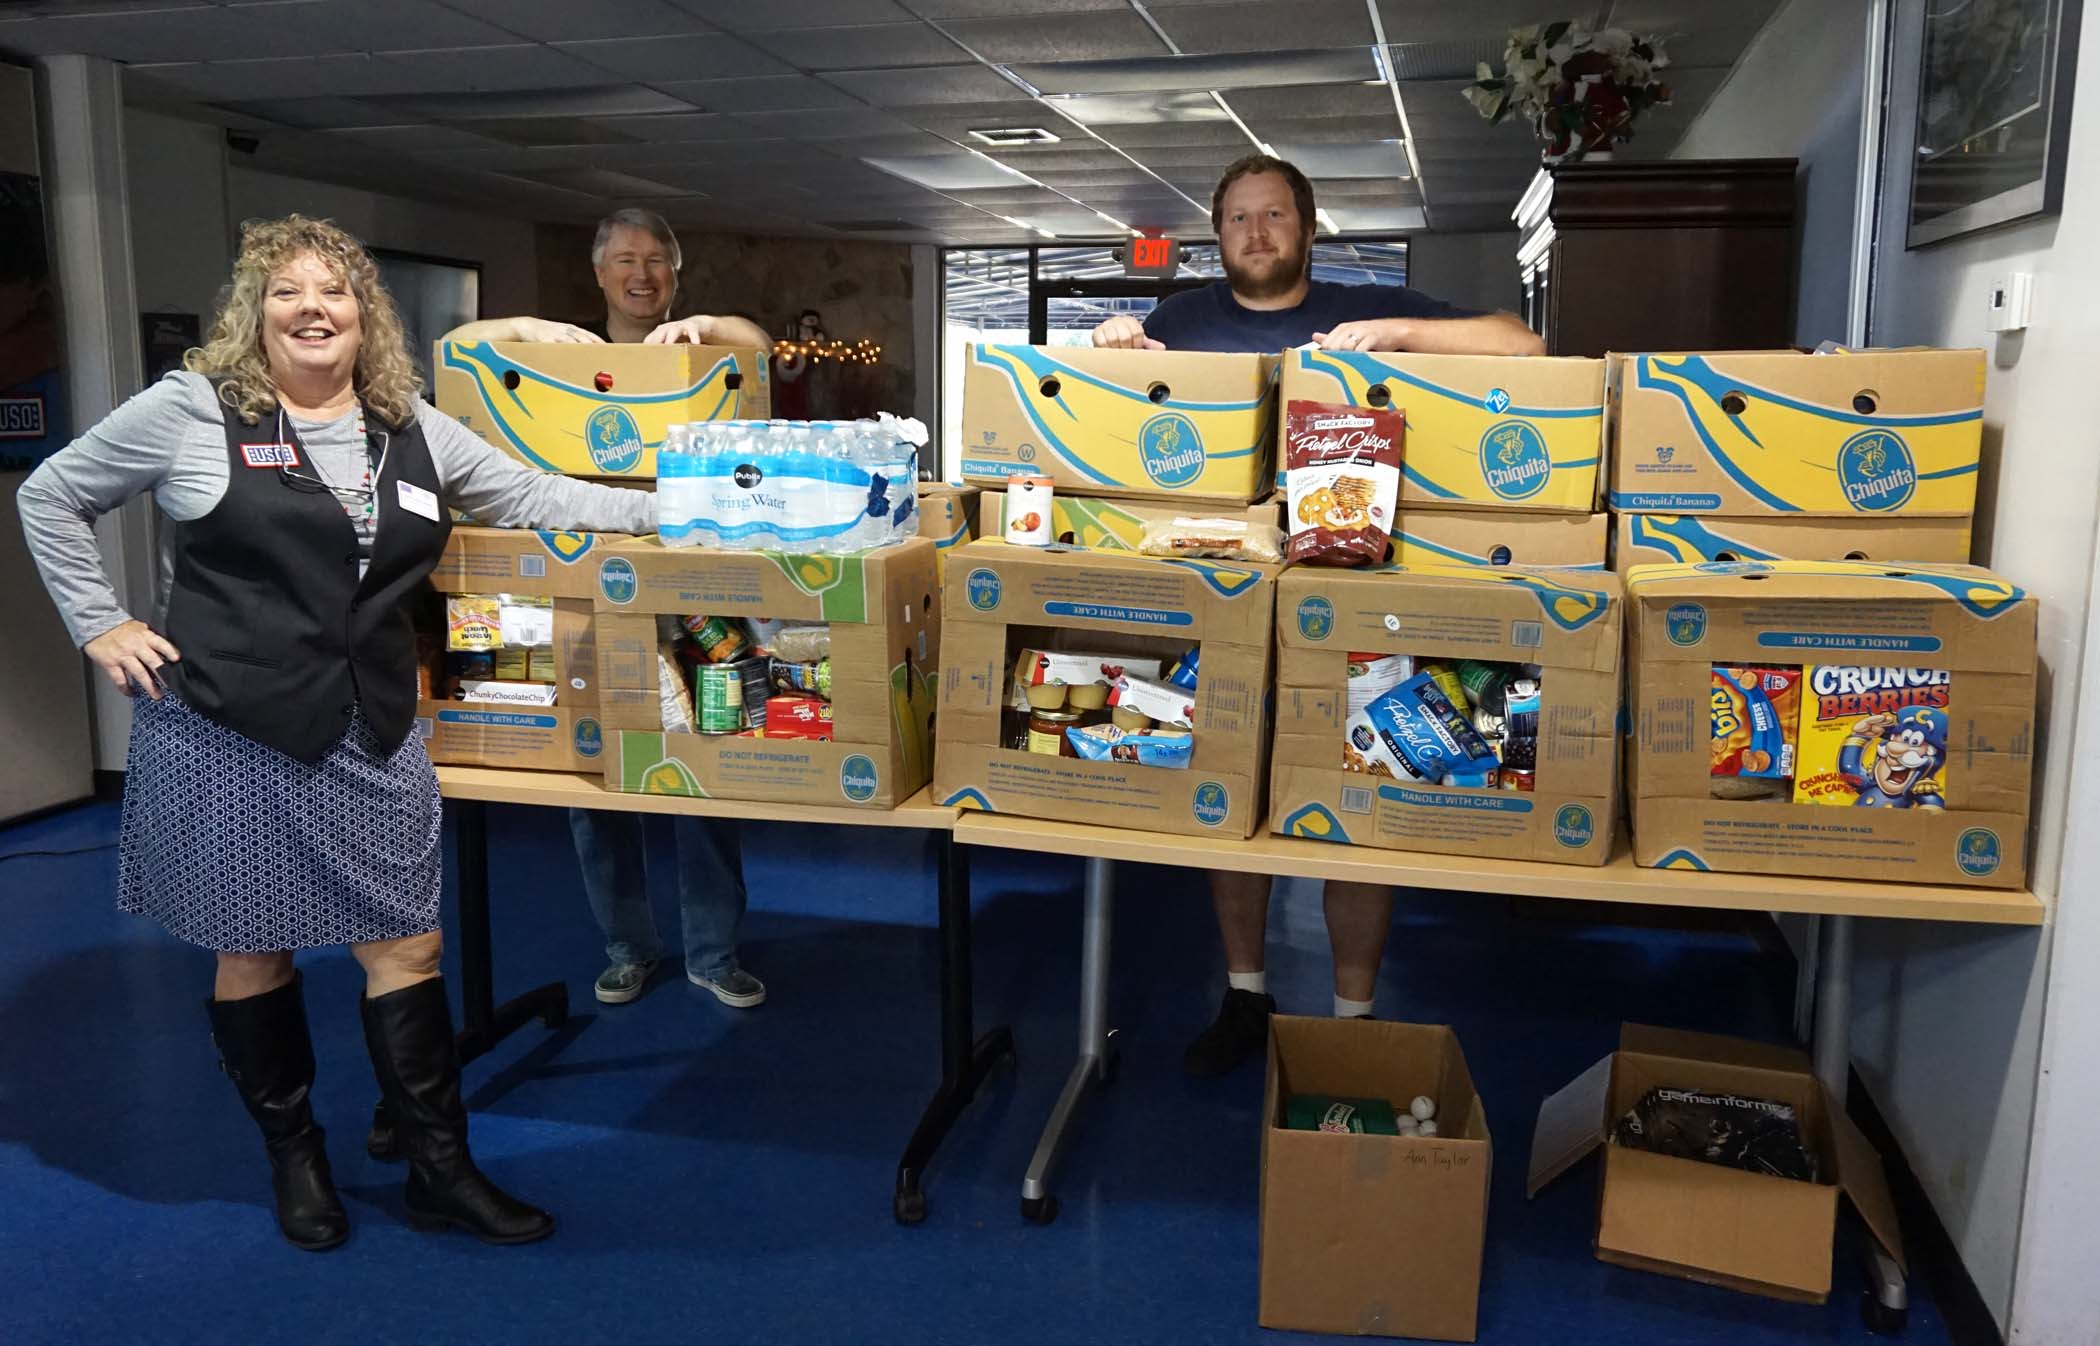 Joyce Schellhorn, from left, James and Mark of the USO Mayport Center welcomed the Elementary students and the 19 boxes of food they delivered.